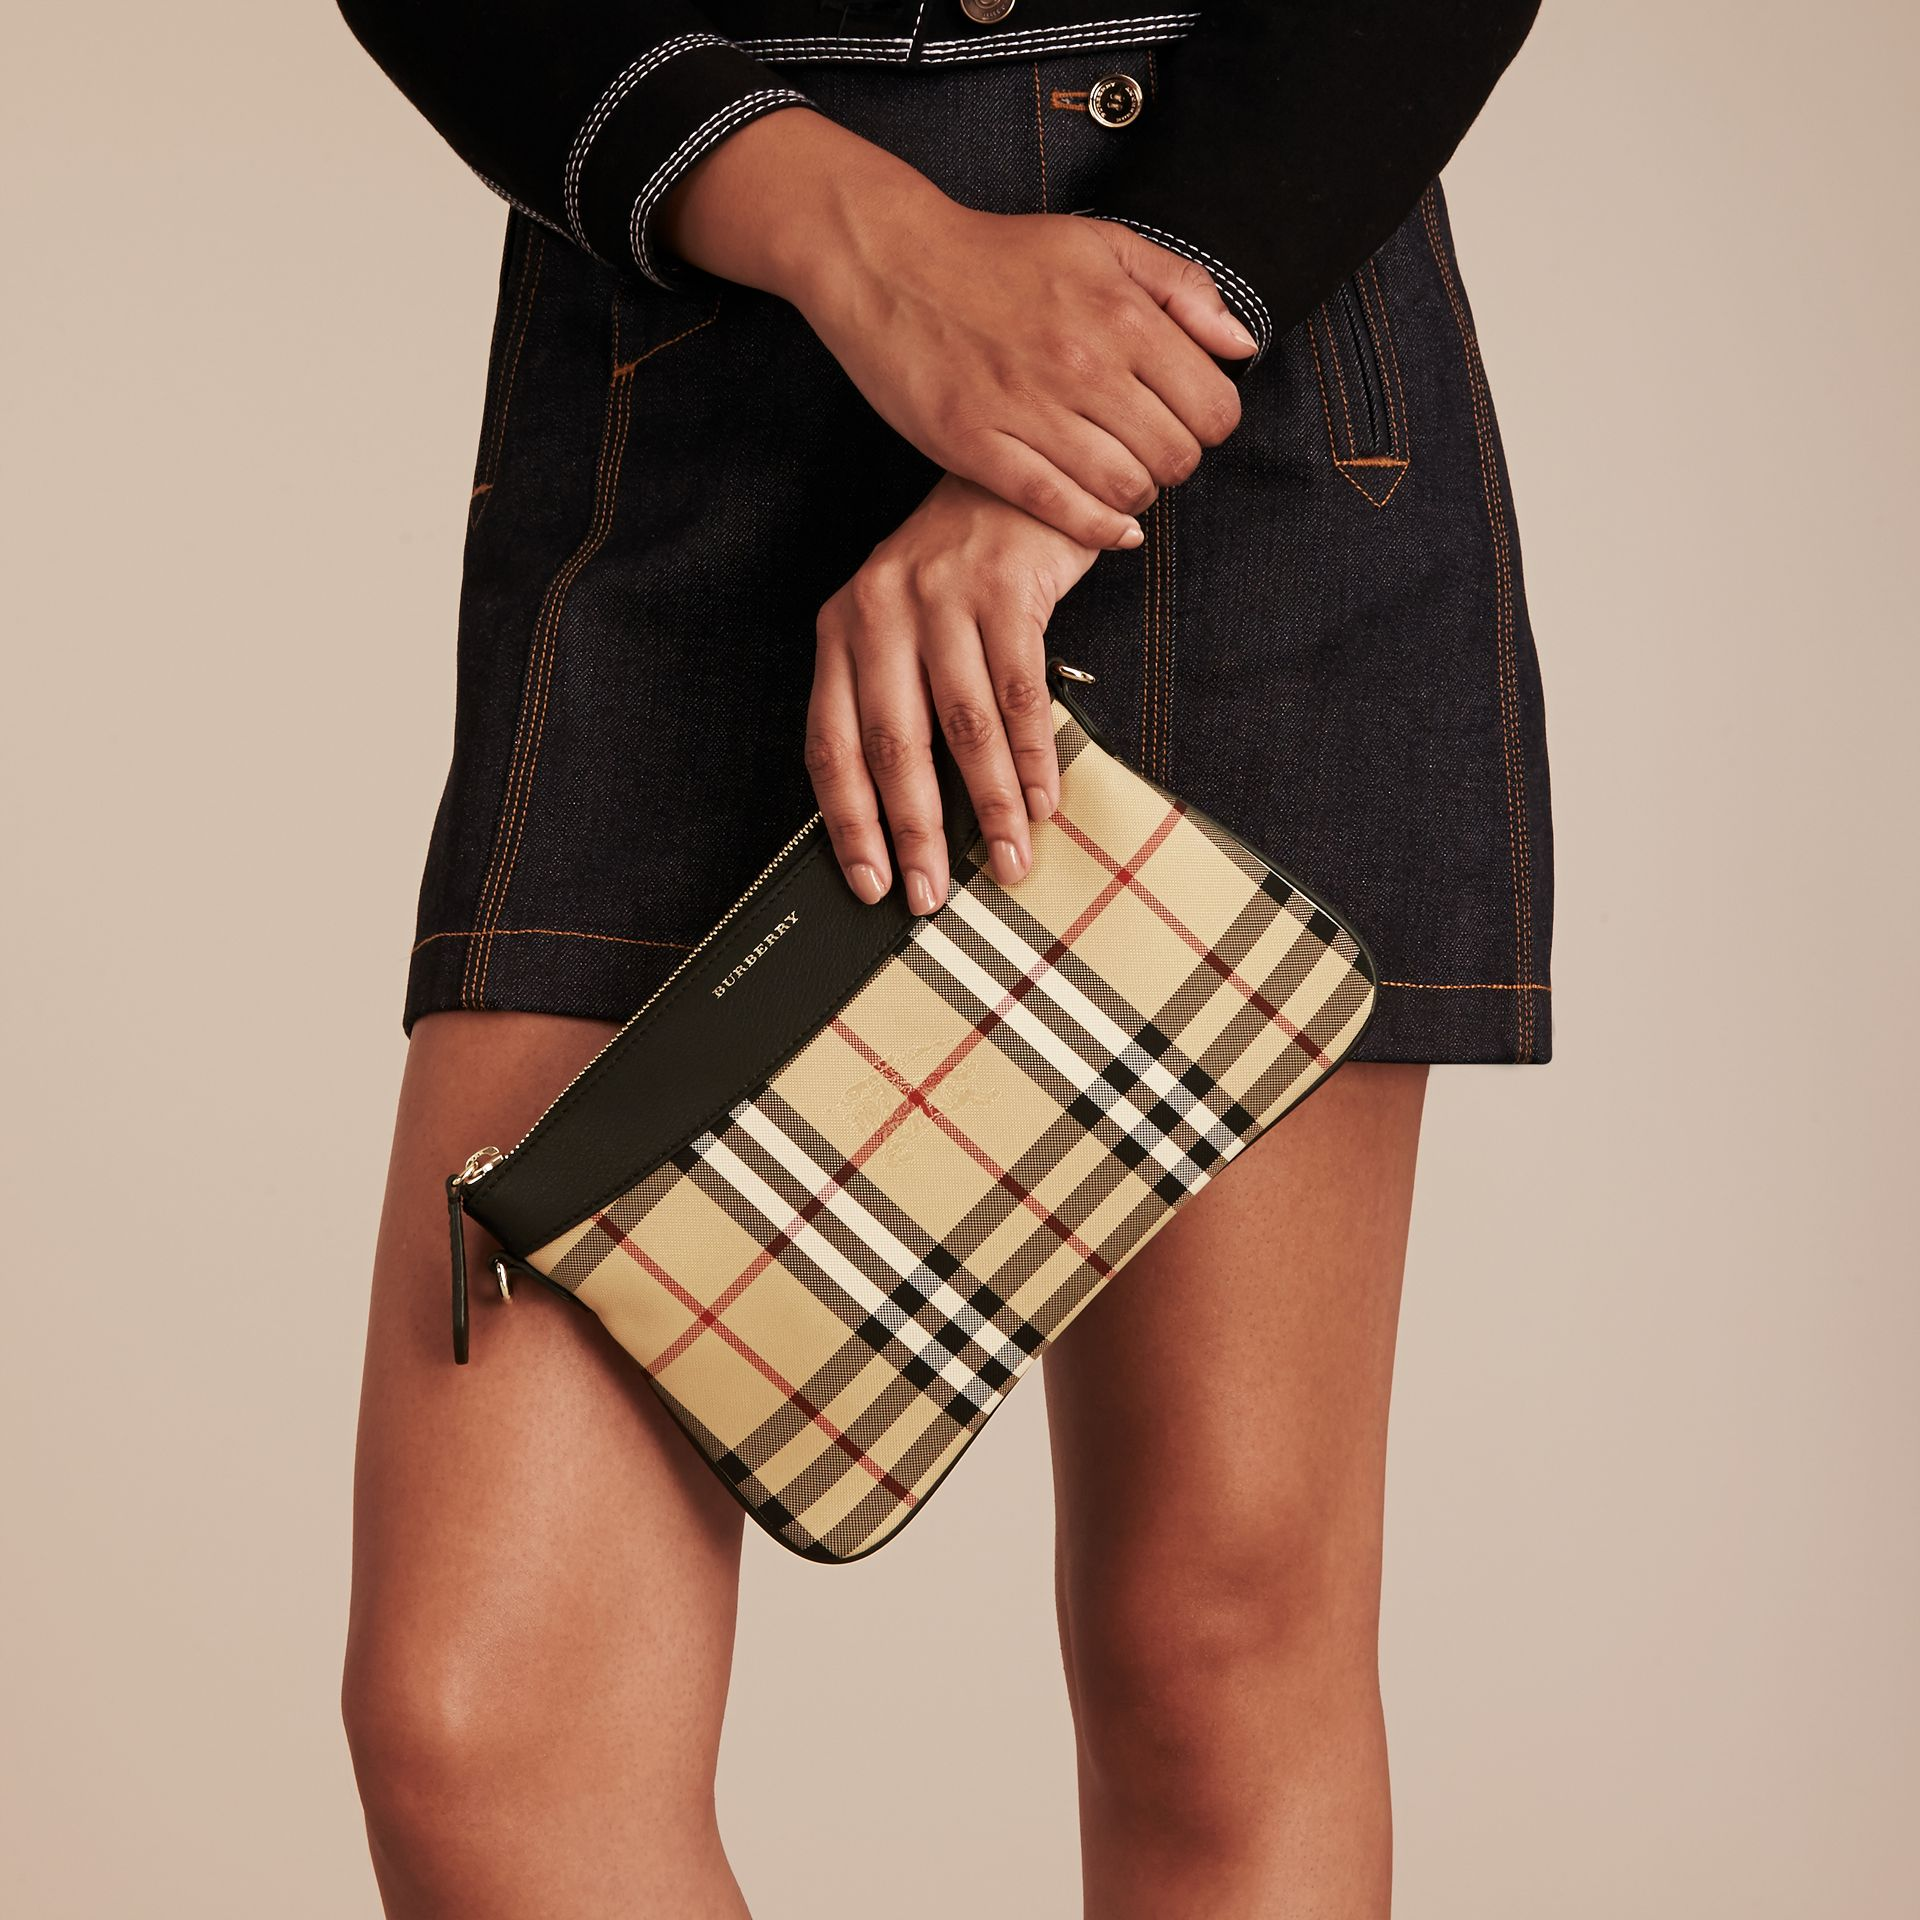 Horseferry Check and Leather Clutch Bag in Black - Women | Burberry Canada - gallery image 3